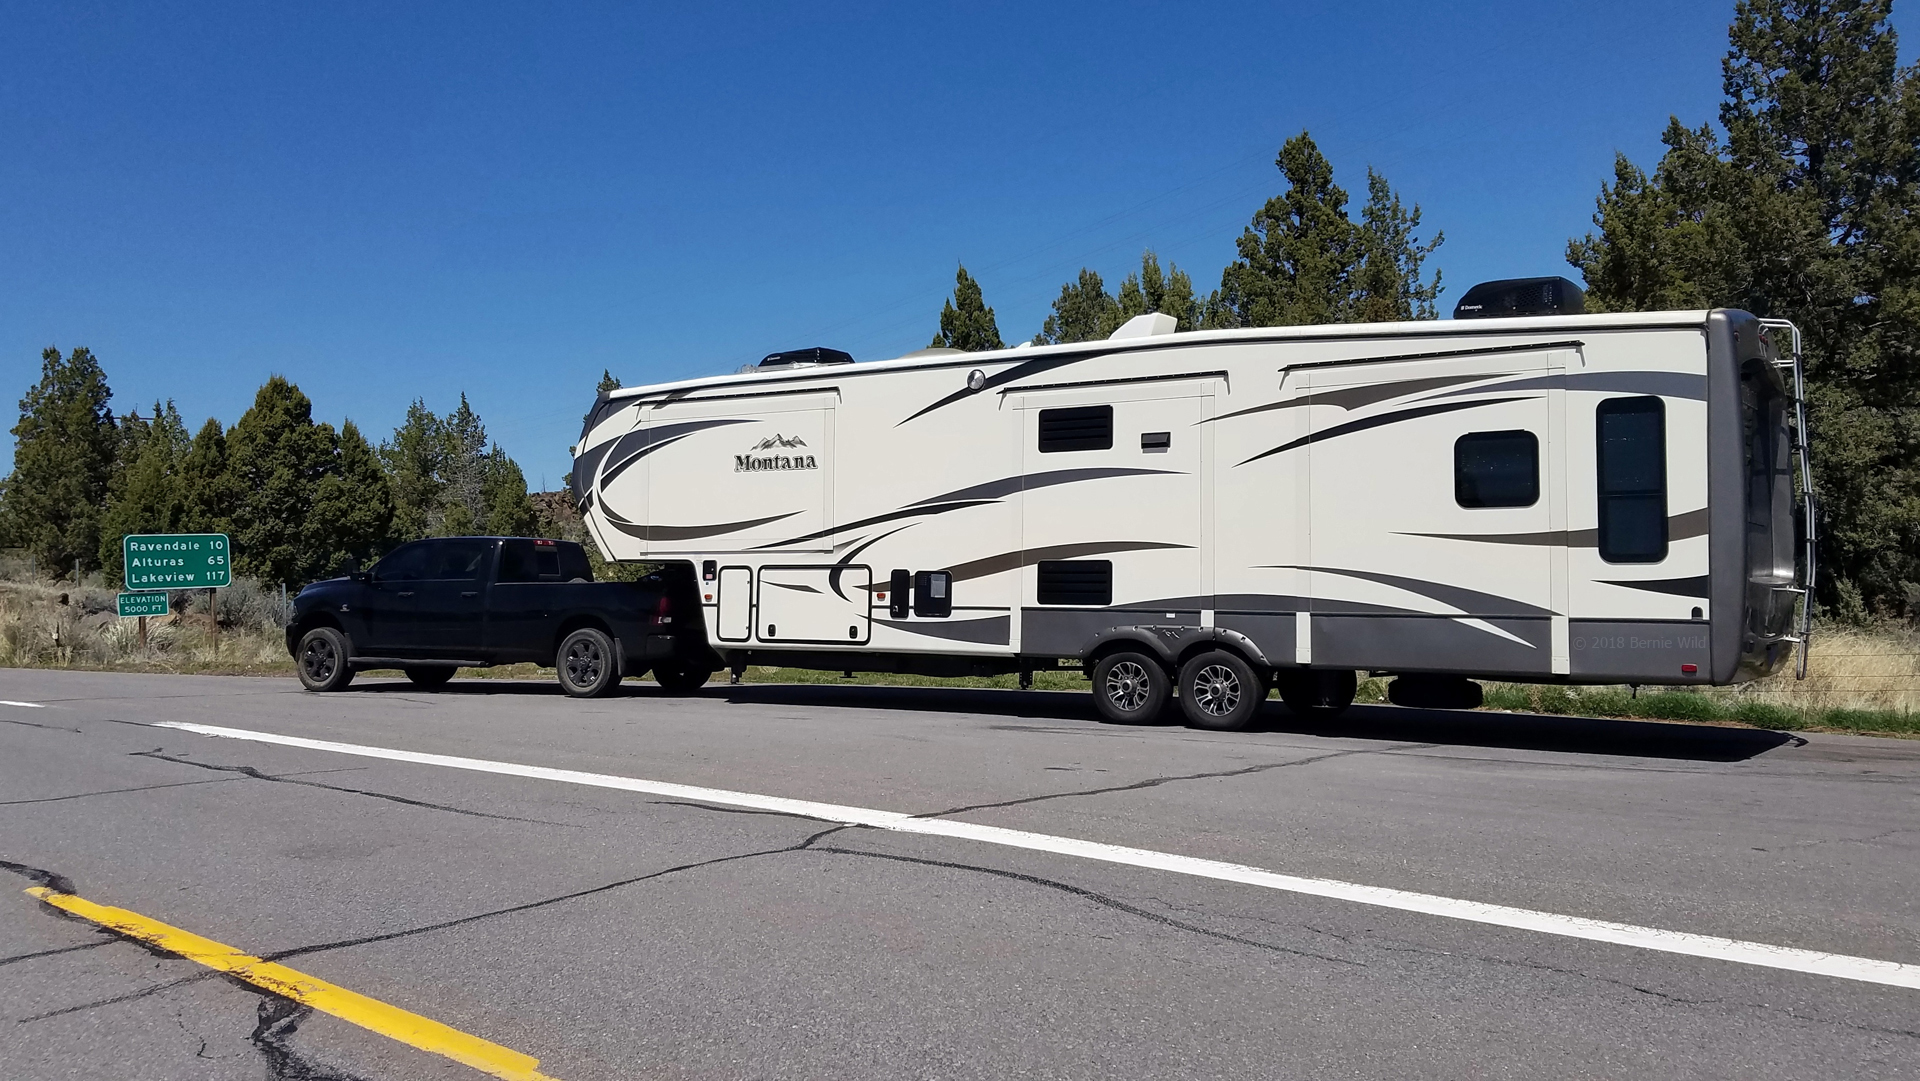 Important Considerations for RV Living